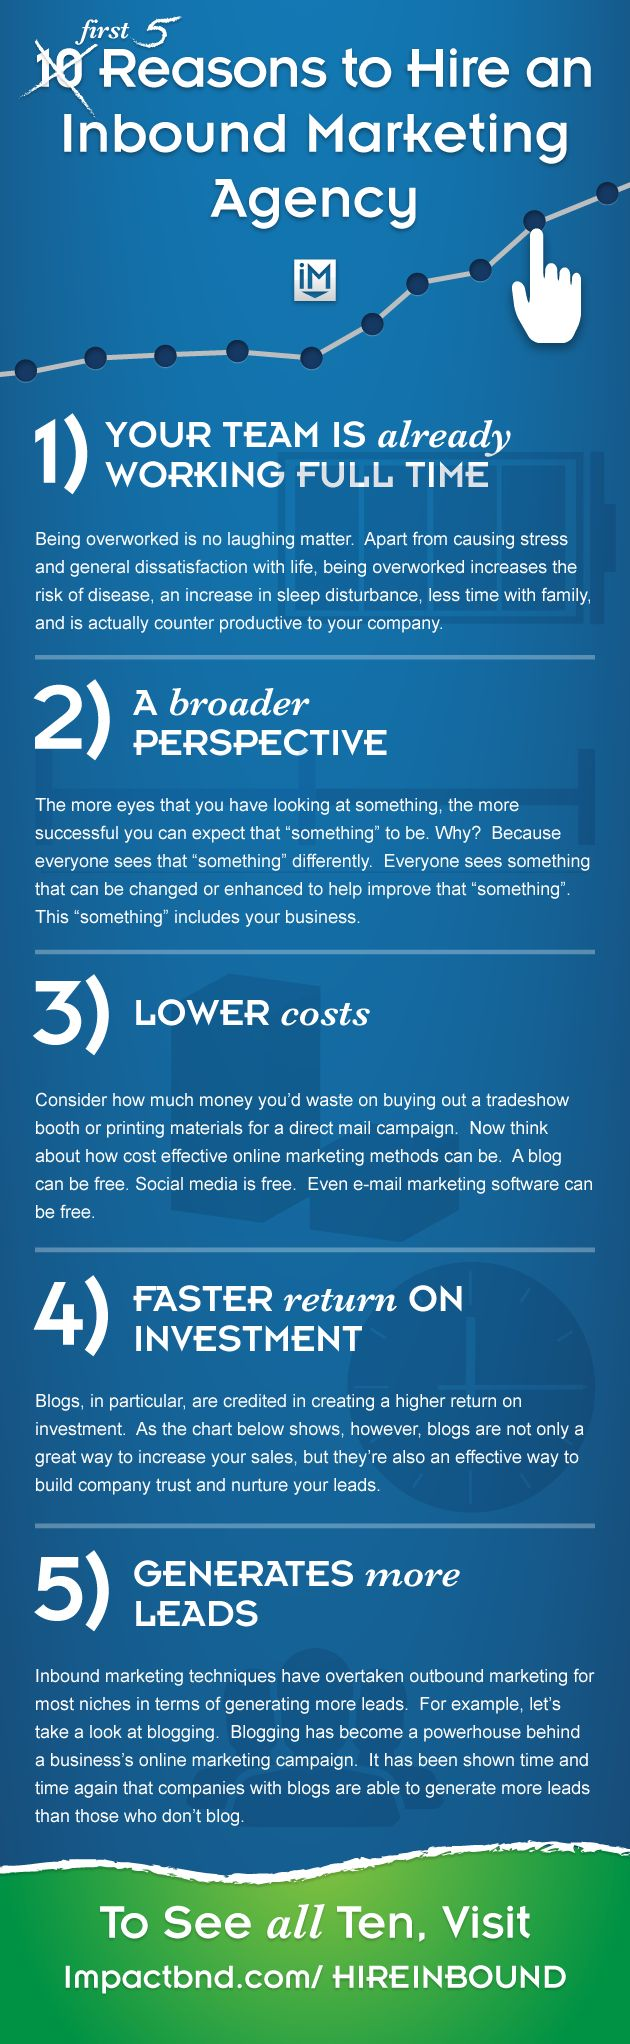 In this brand new infographic, IMPACT details the first five benefits of hiring an inbound marketing agency